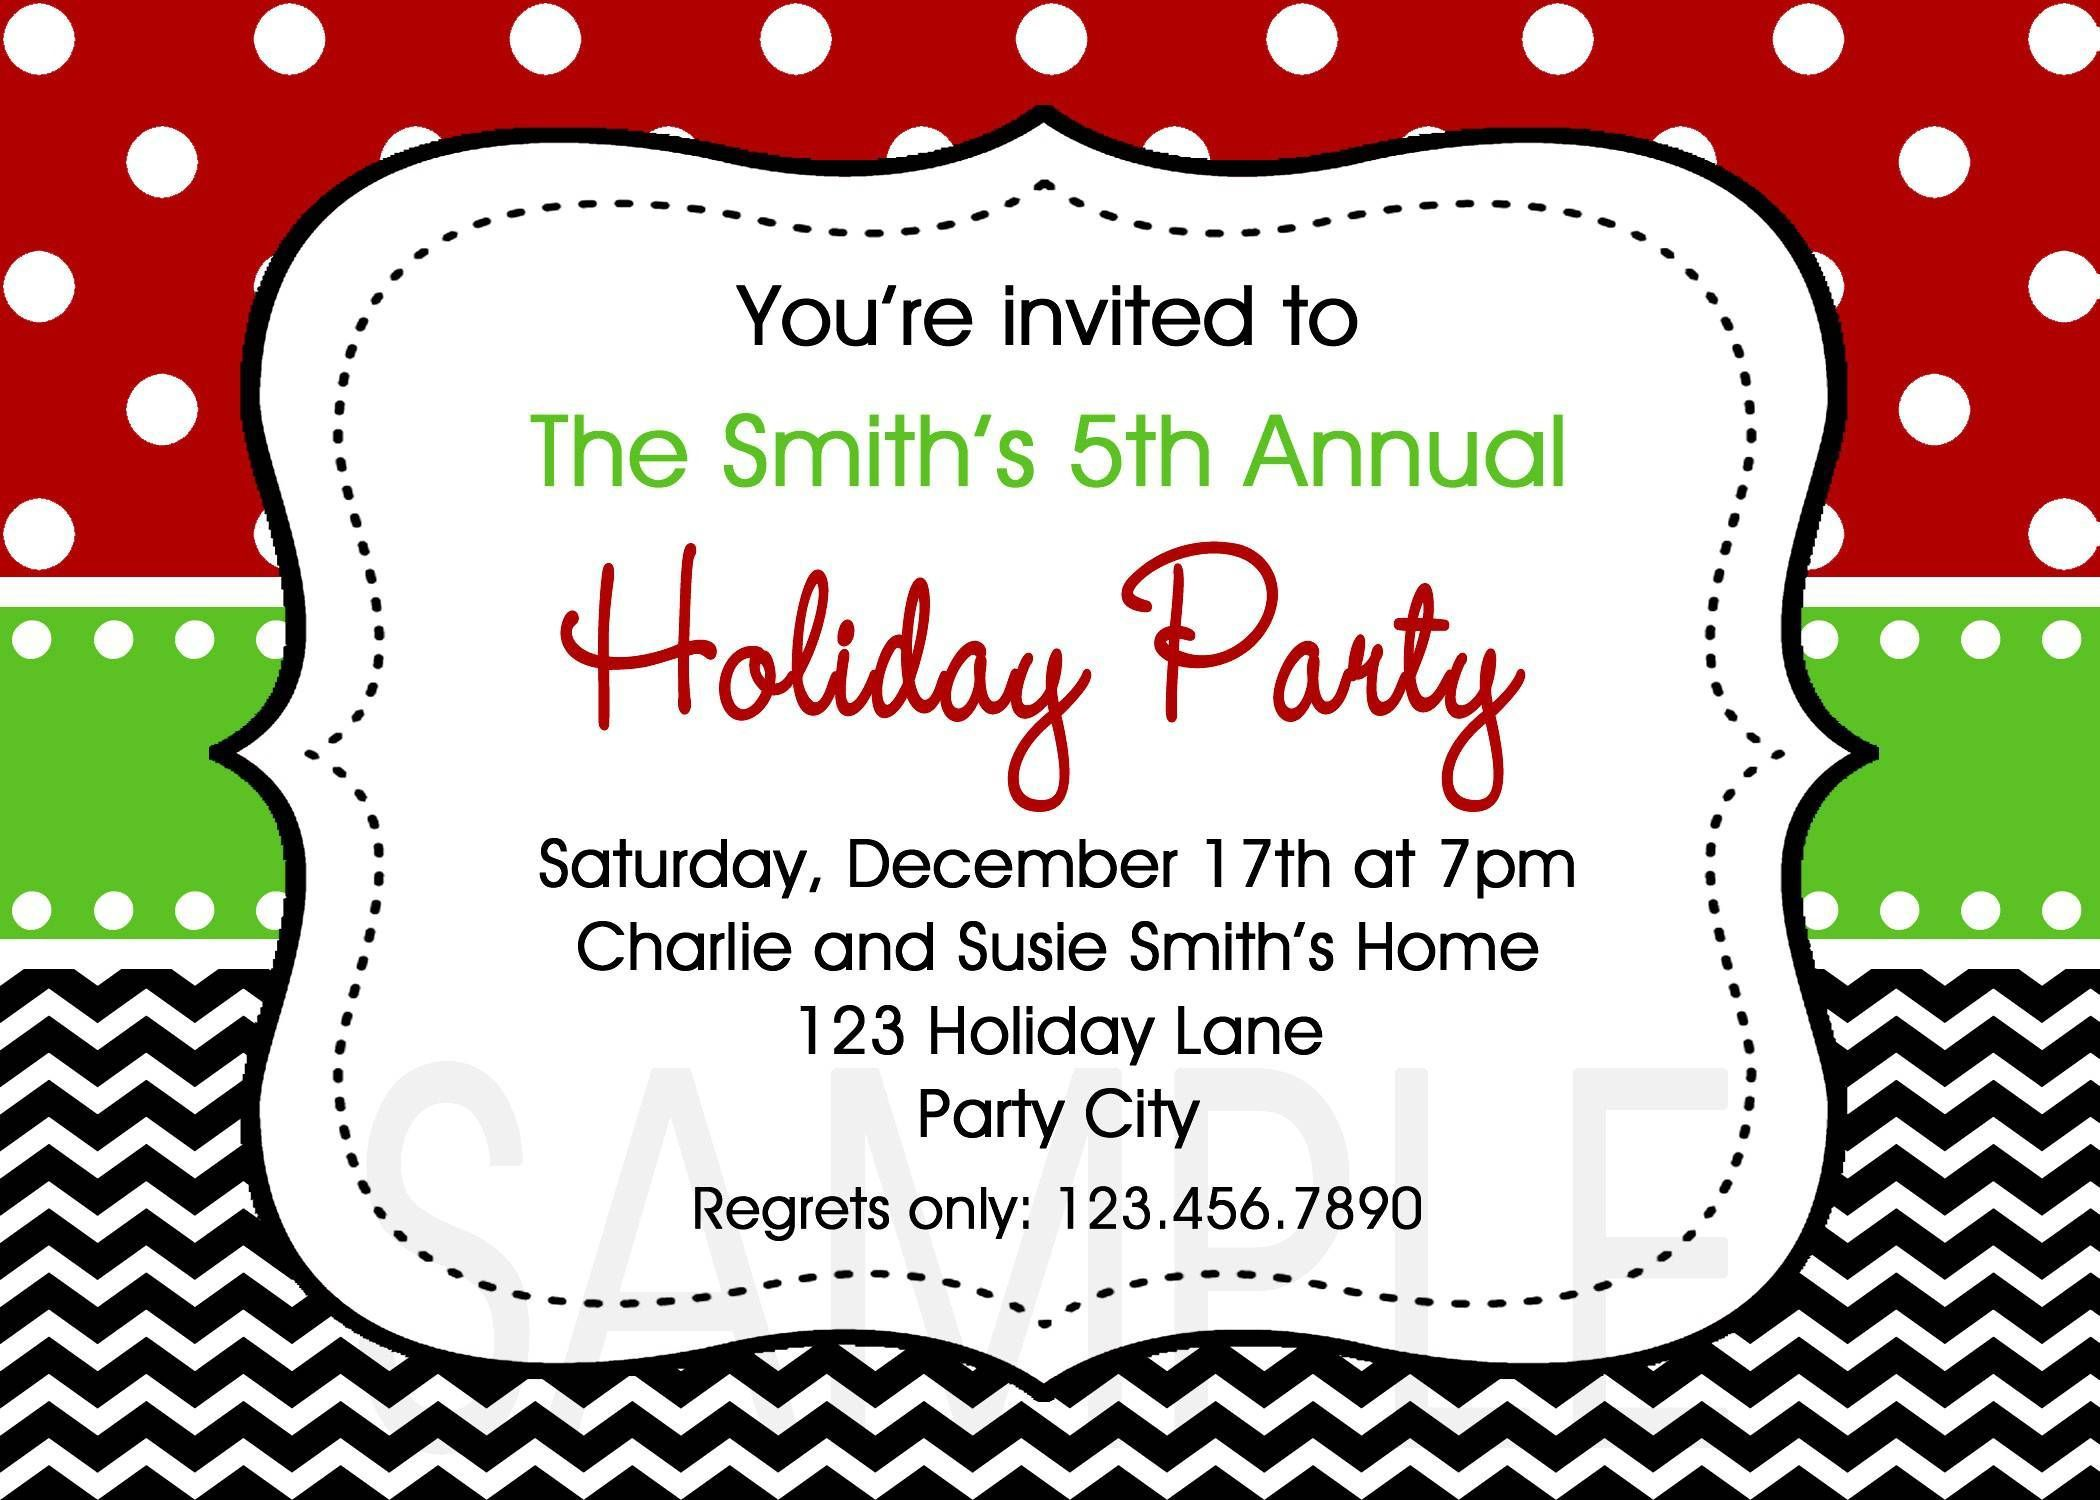 004 Phenomenal Holiday Party Invite Template Word Picture  Cocktail Invitation Wording Sample Microsoft ChristmaFull